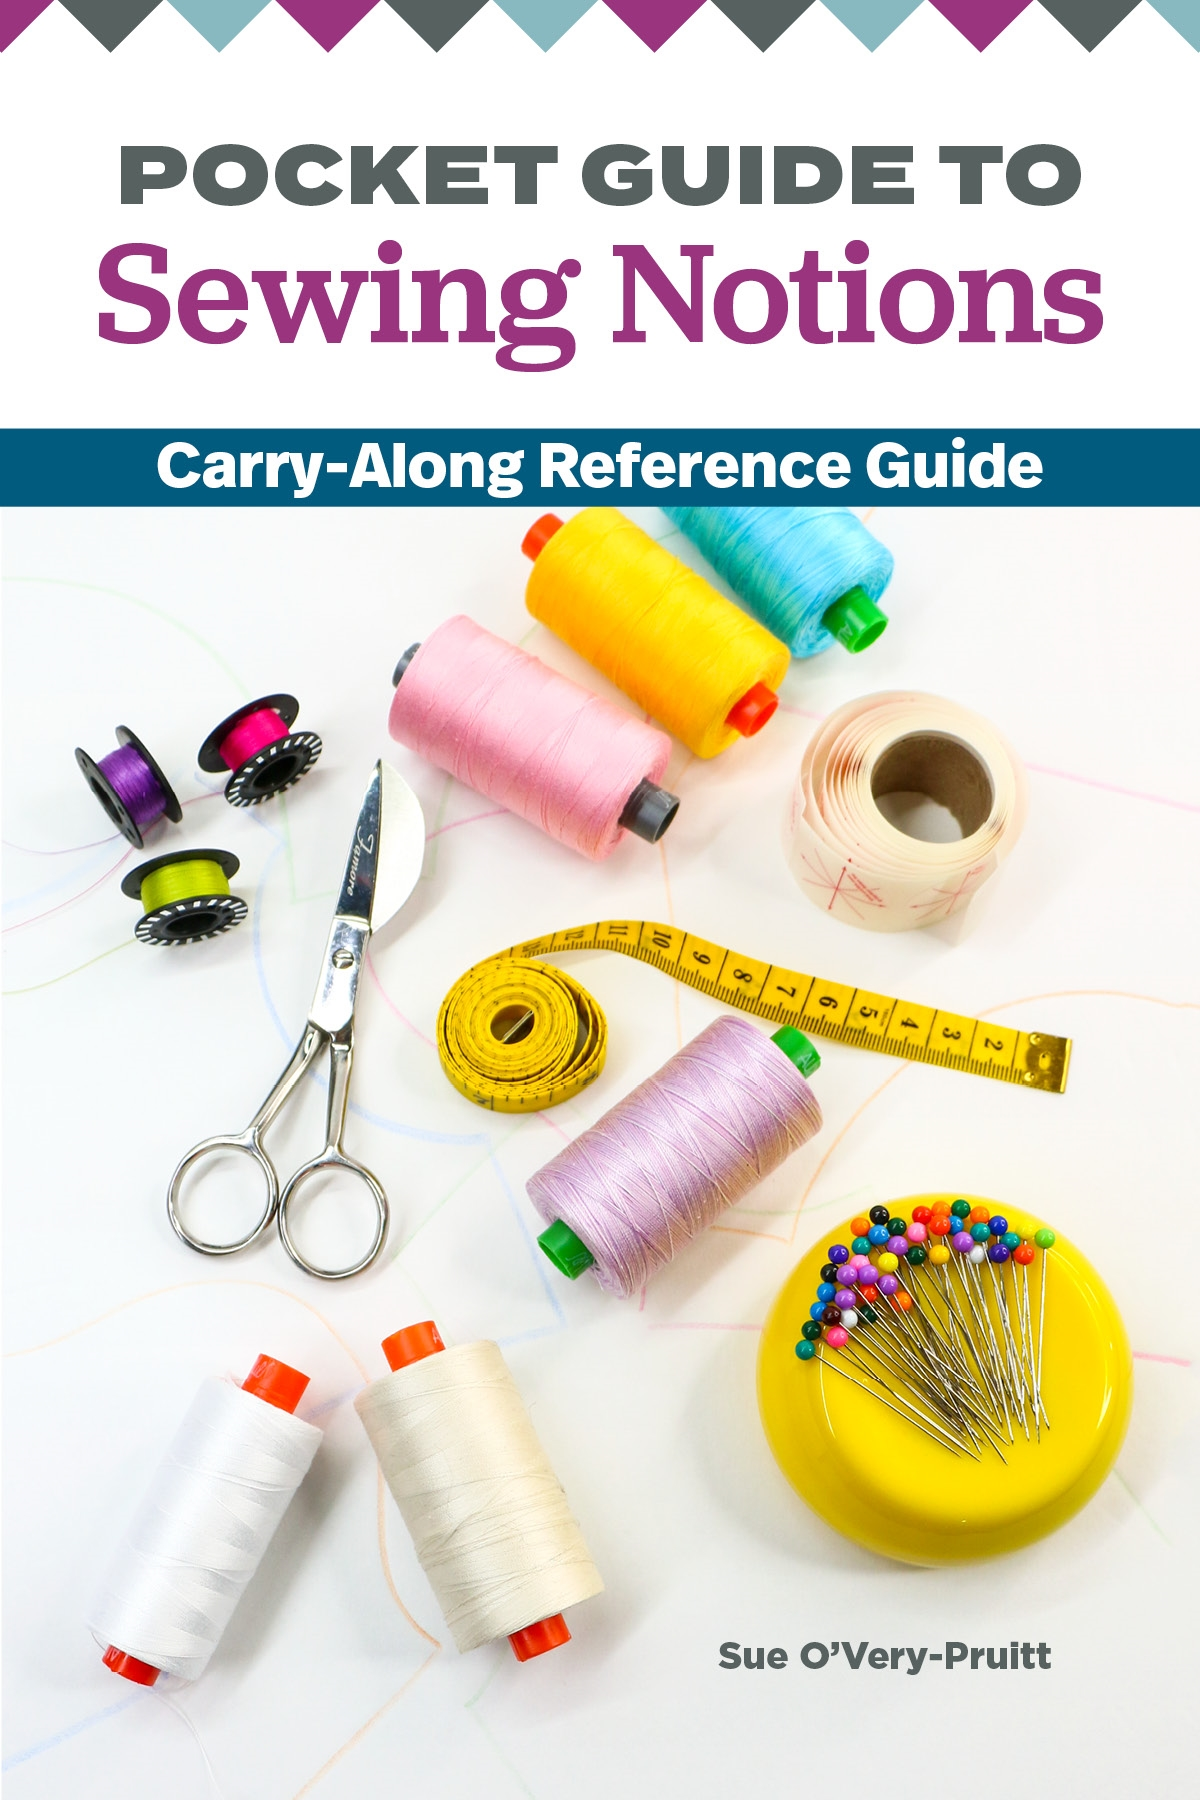 Pocket Guide to Sewing Notions